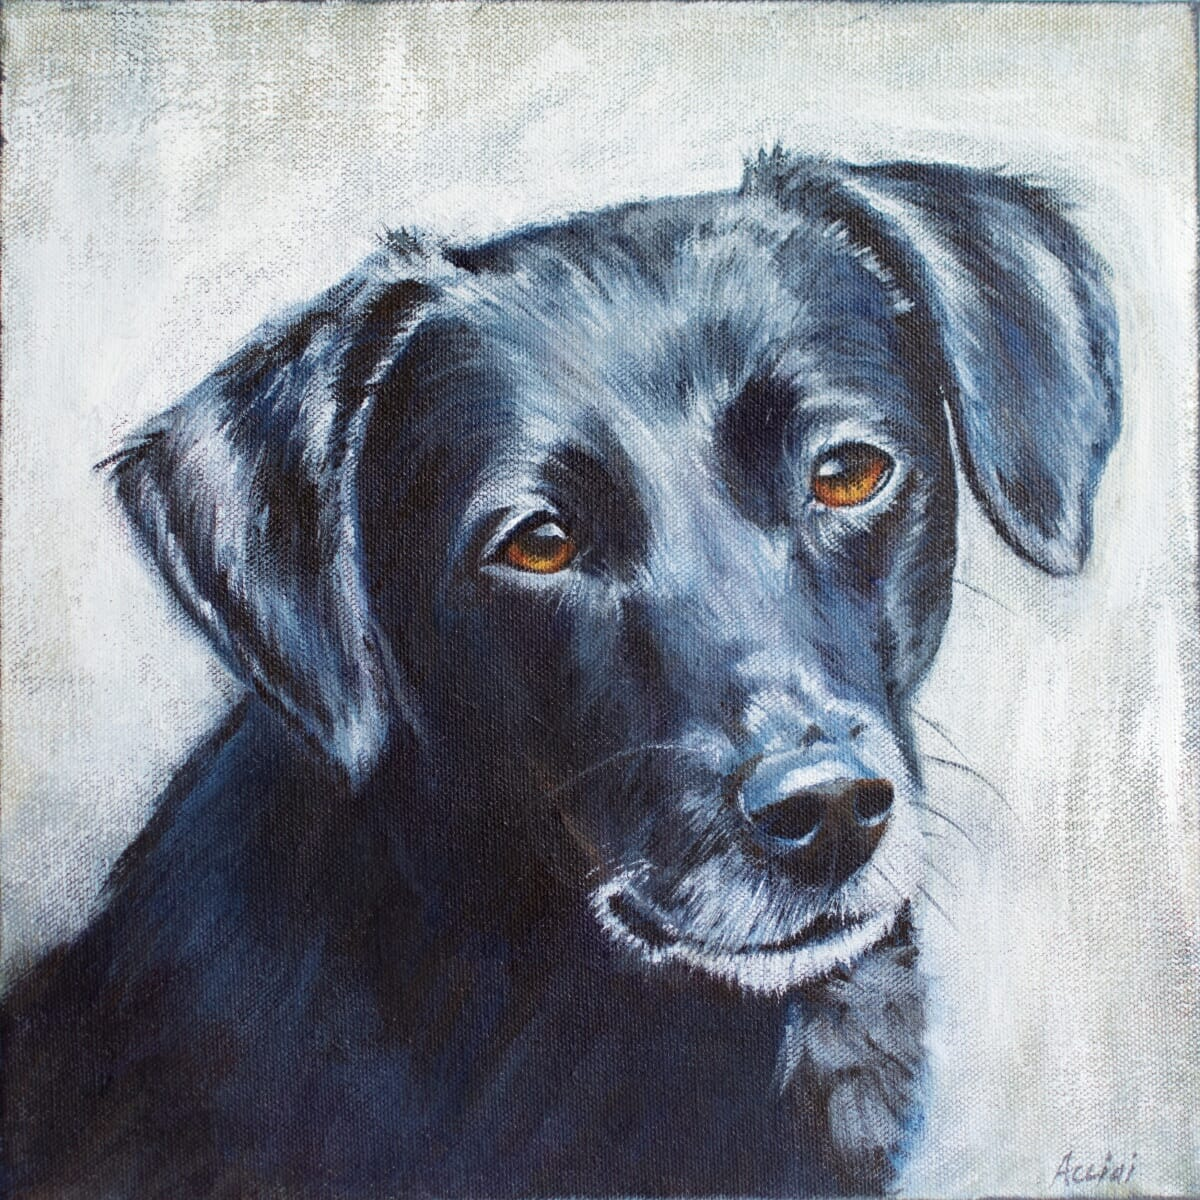 Labrador by Lisa Acciai of LacStudio